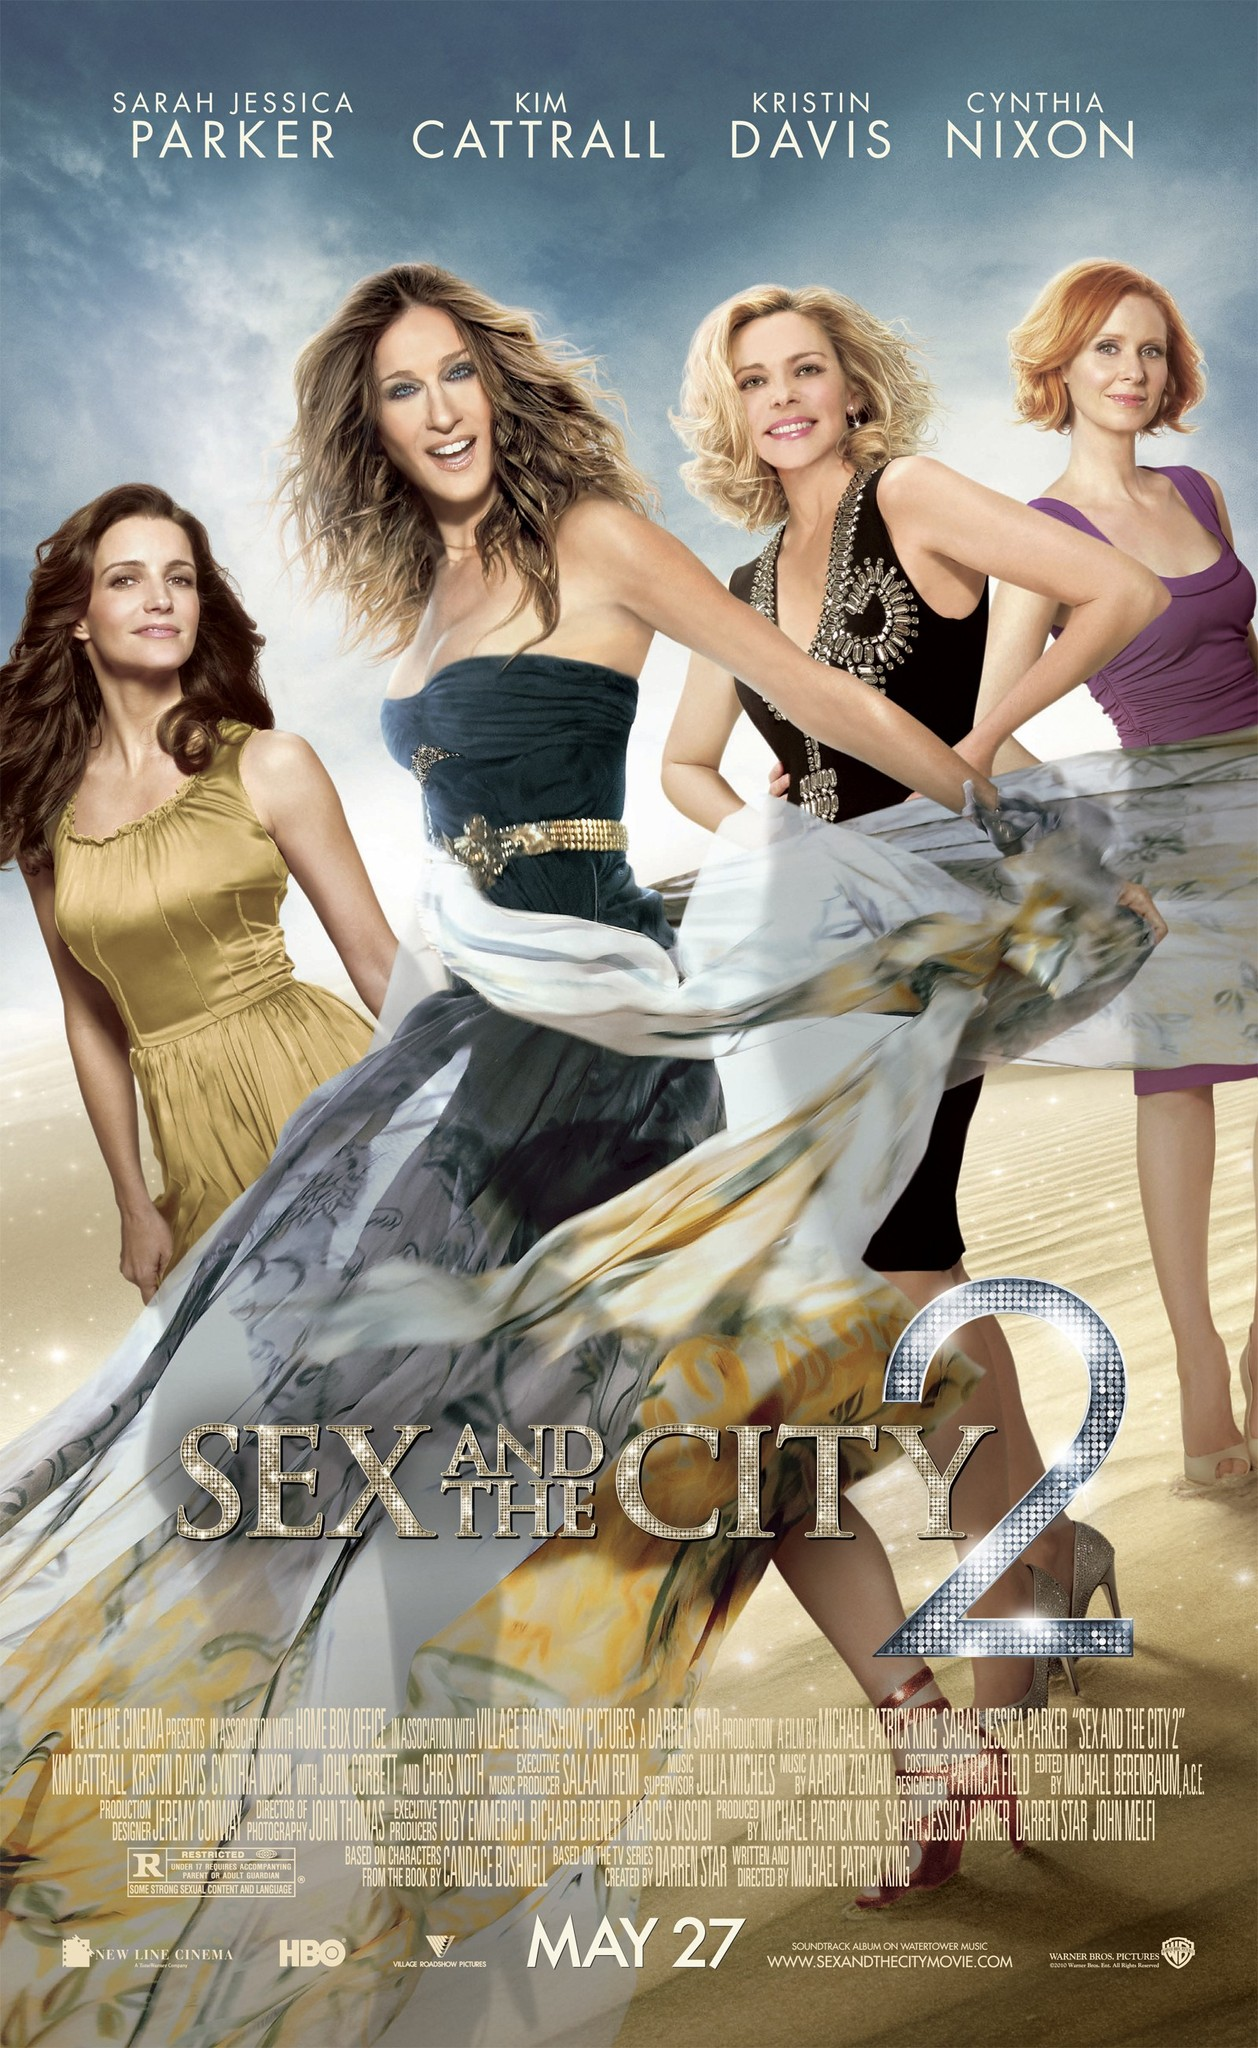 Free download sex and the city movie